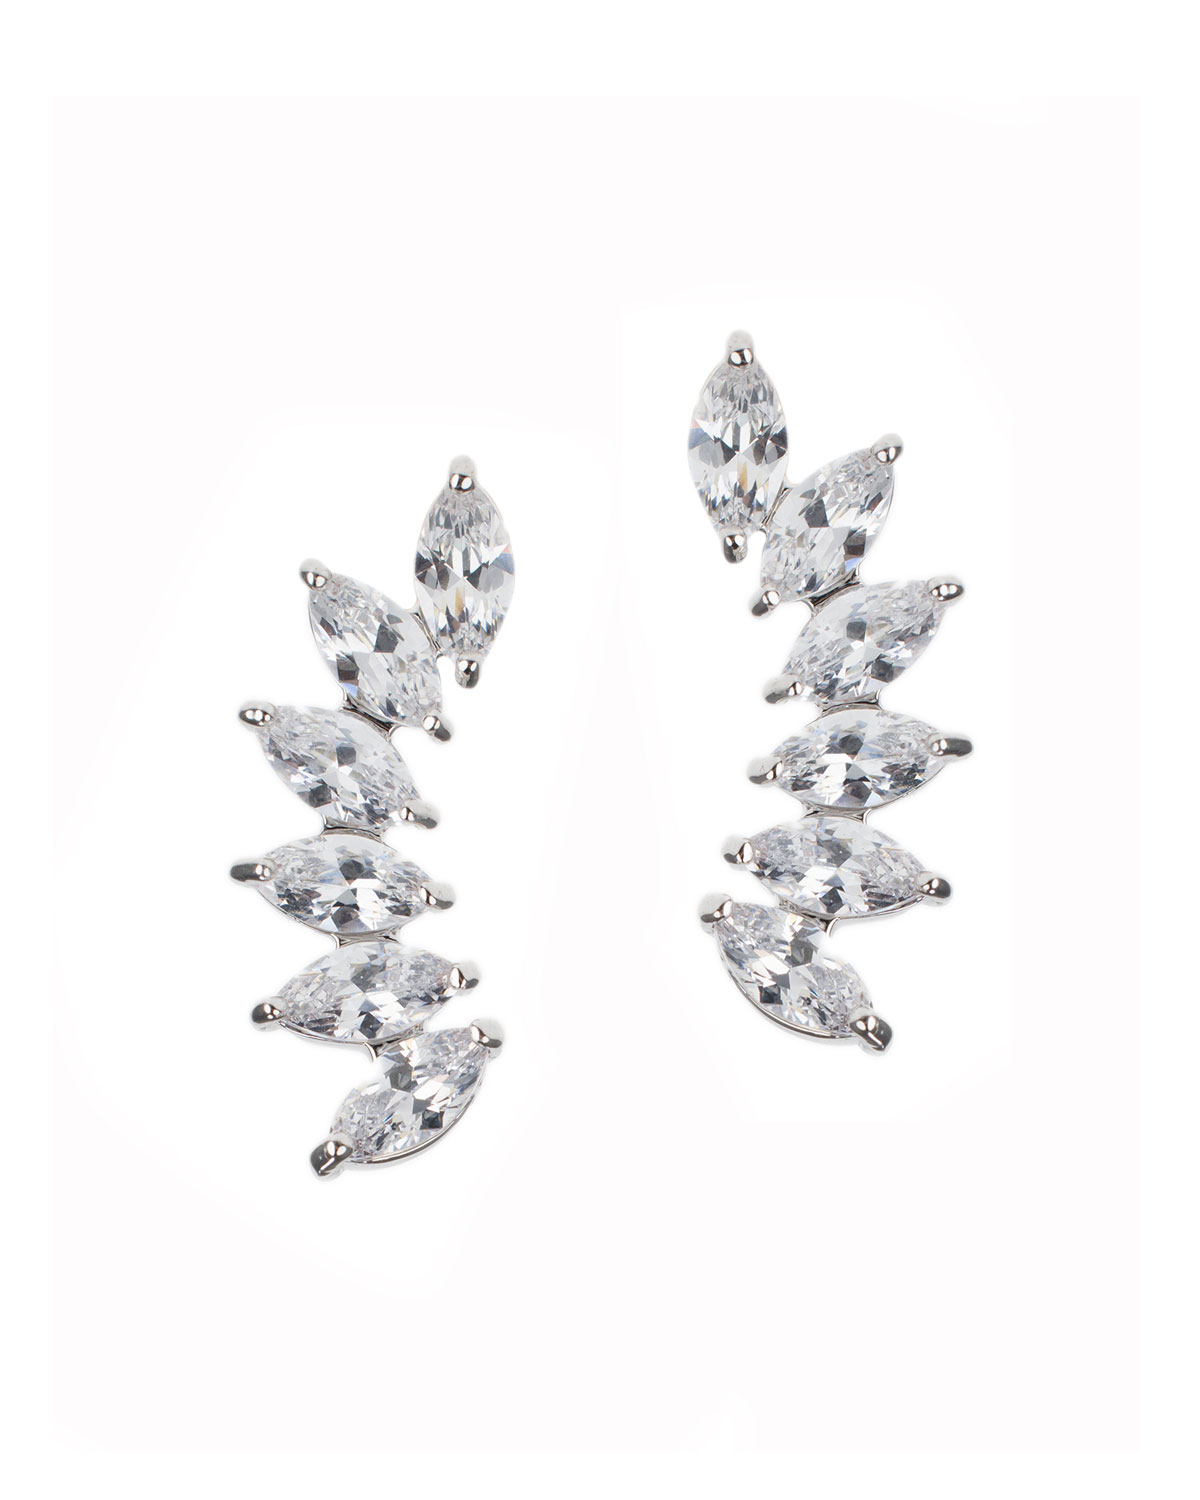 Curved Cubic Zirconia Earring Crawlers